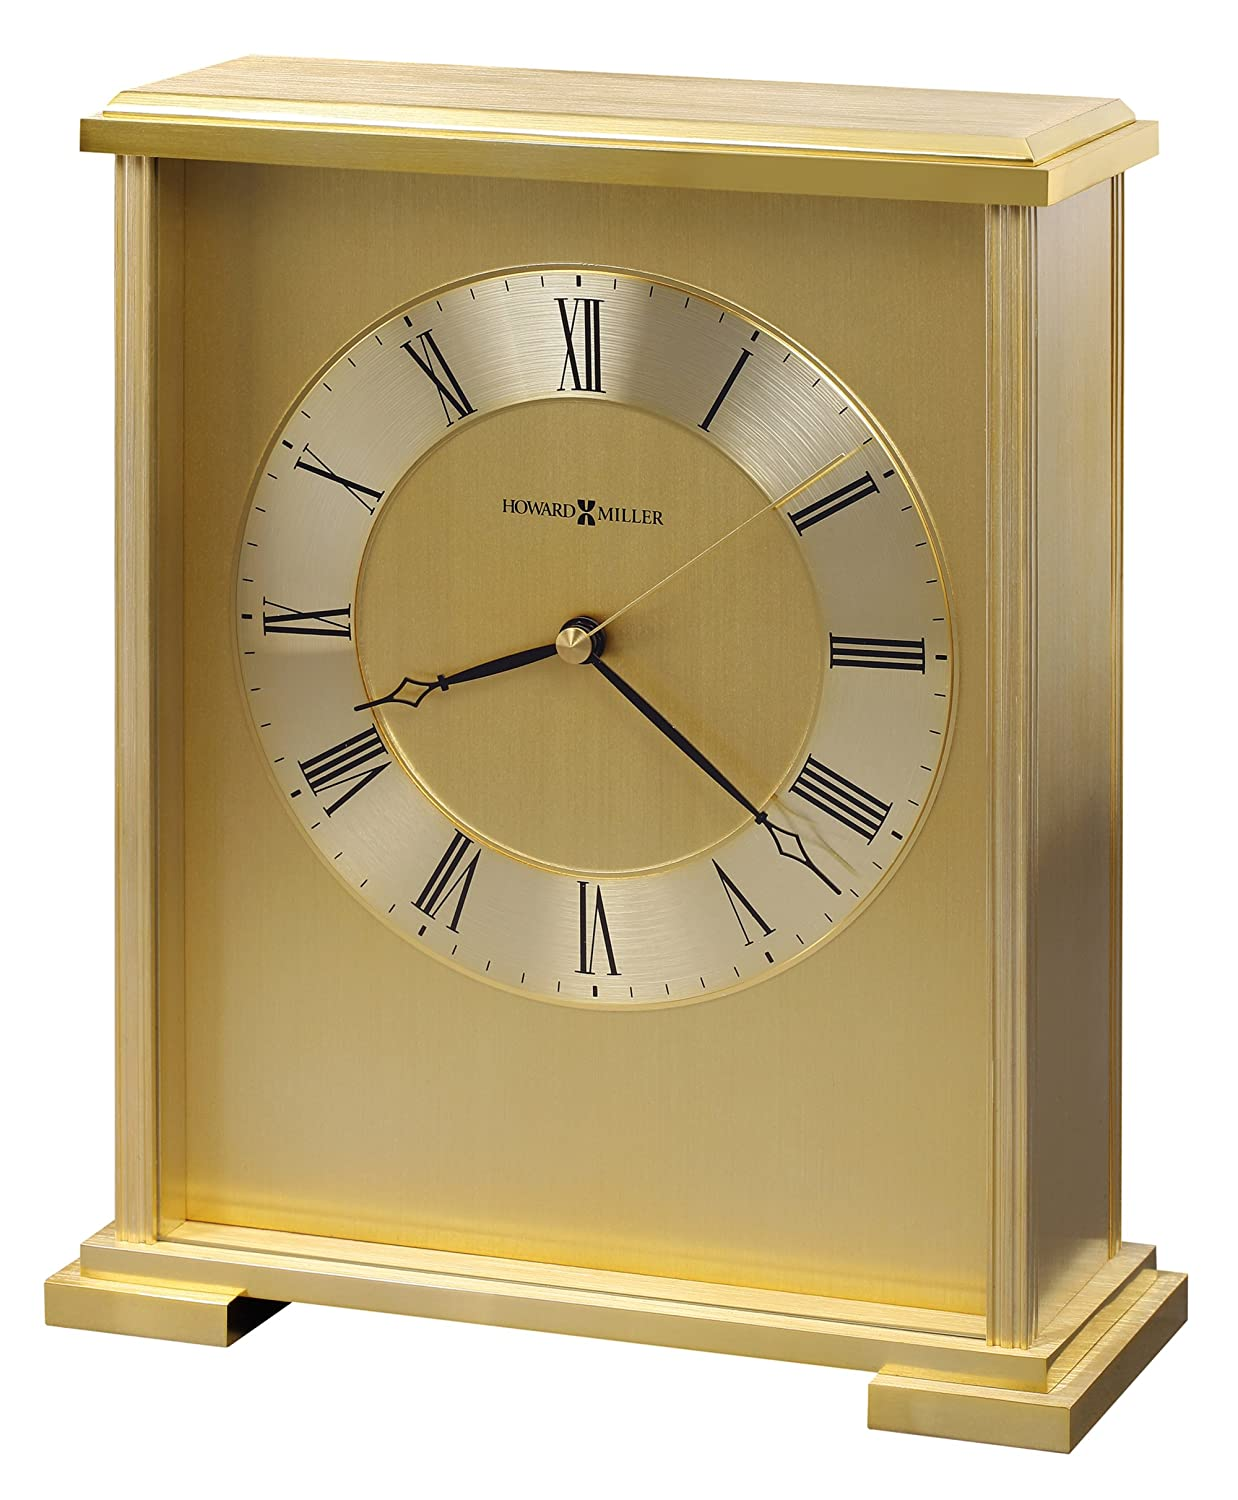 Howard Miller antique brass table clock